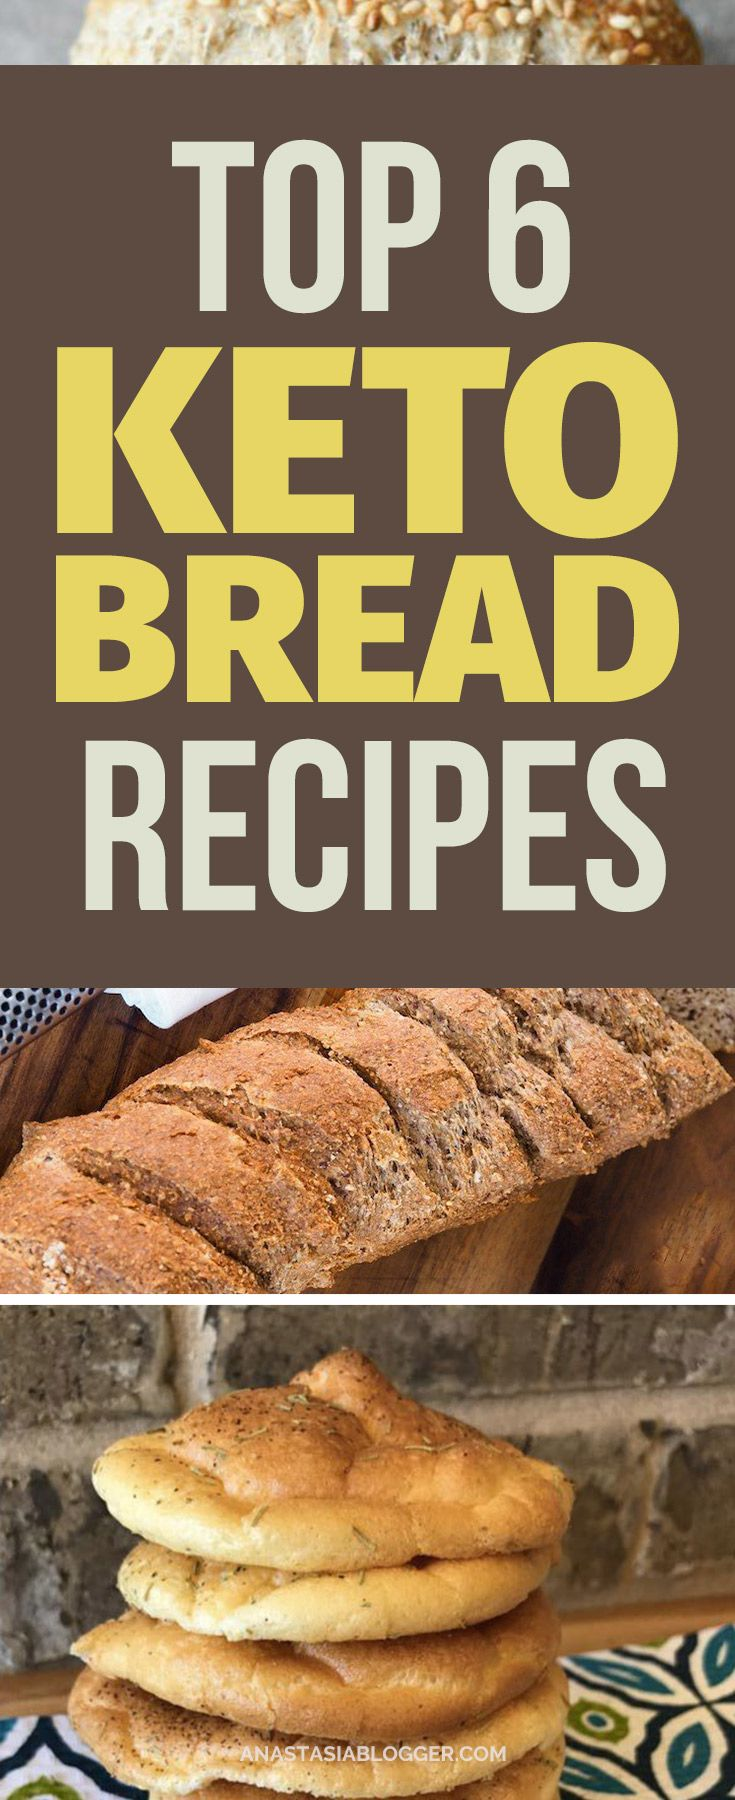 Save these best Keto bread recipes to keep your Ketosis and eat products you are used to. These Easy Low Carb bread recipes are ideal for Ketogenic diet and will help you stay in Ketosis without restricting your favorite food. #keto #lowcarb